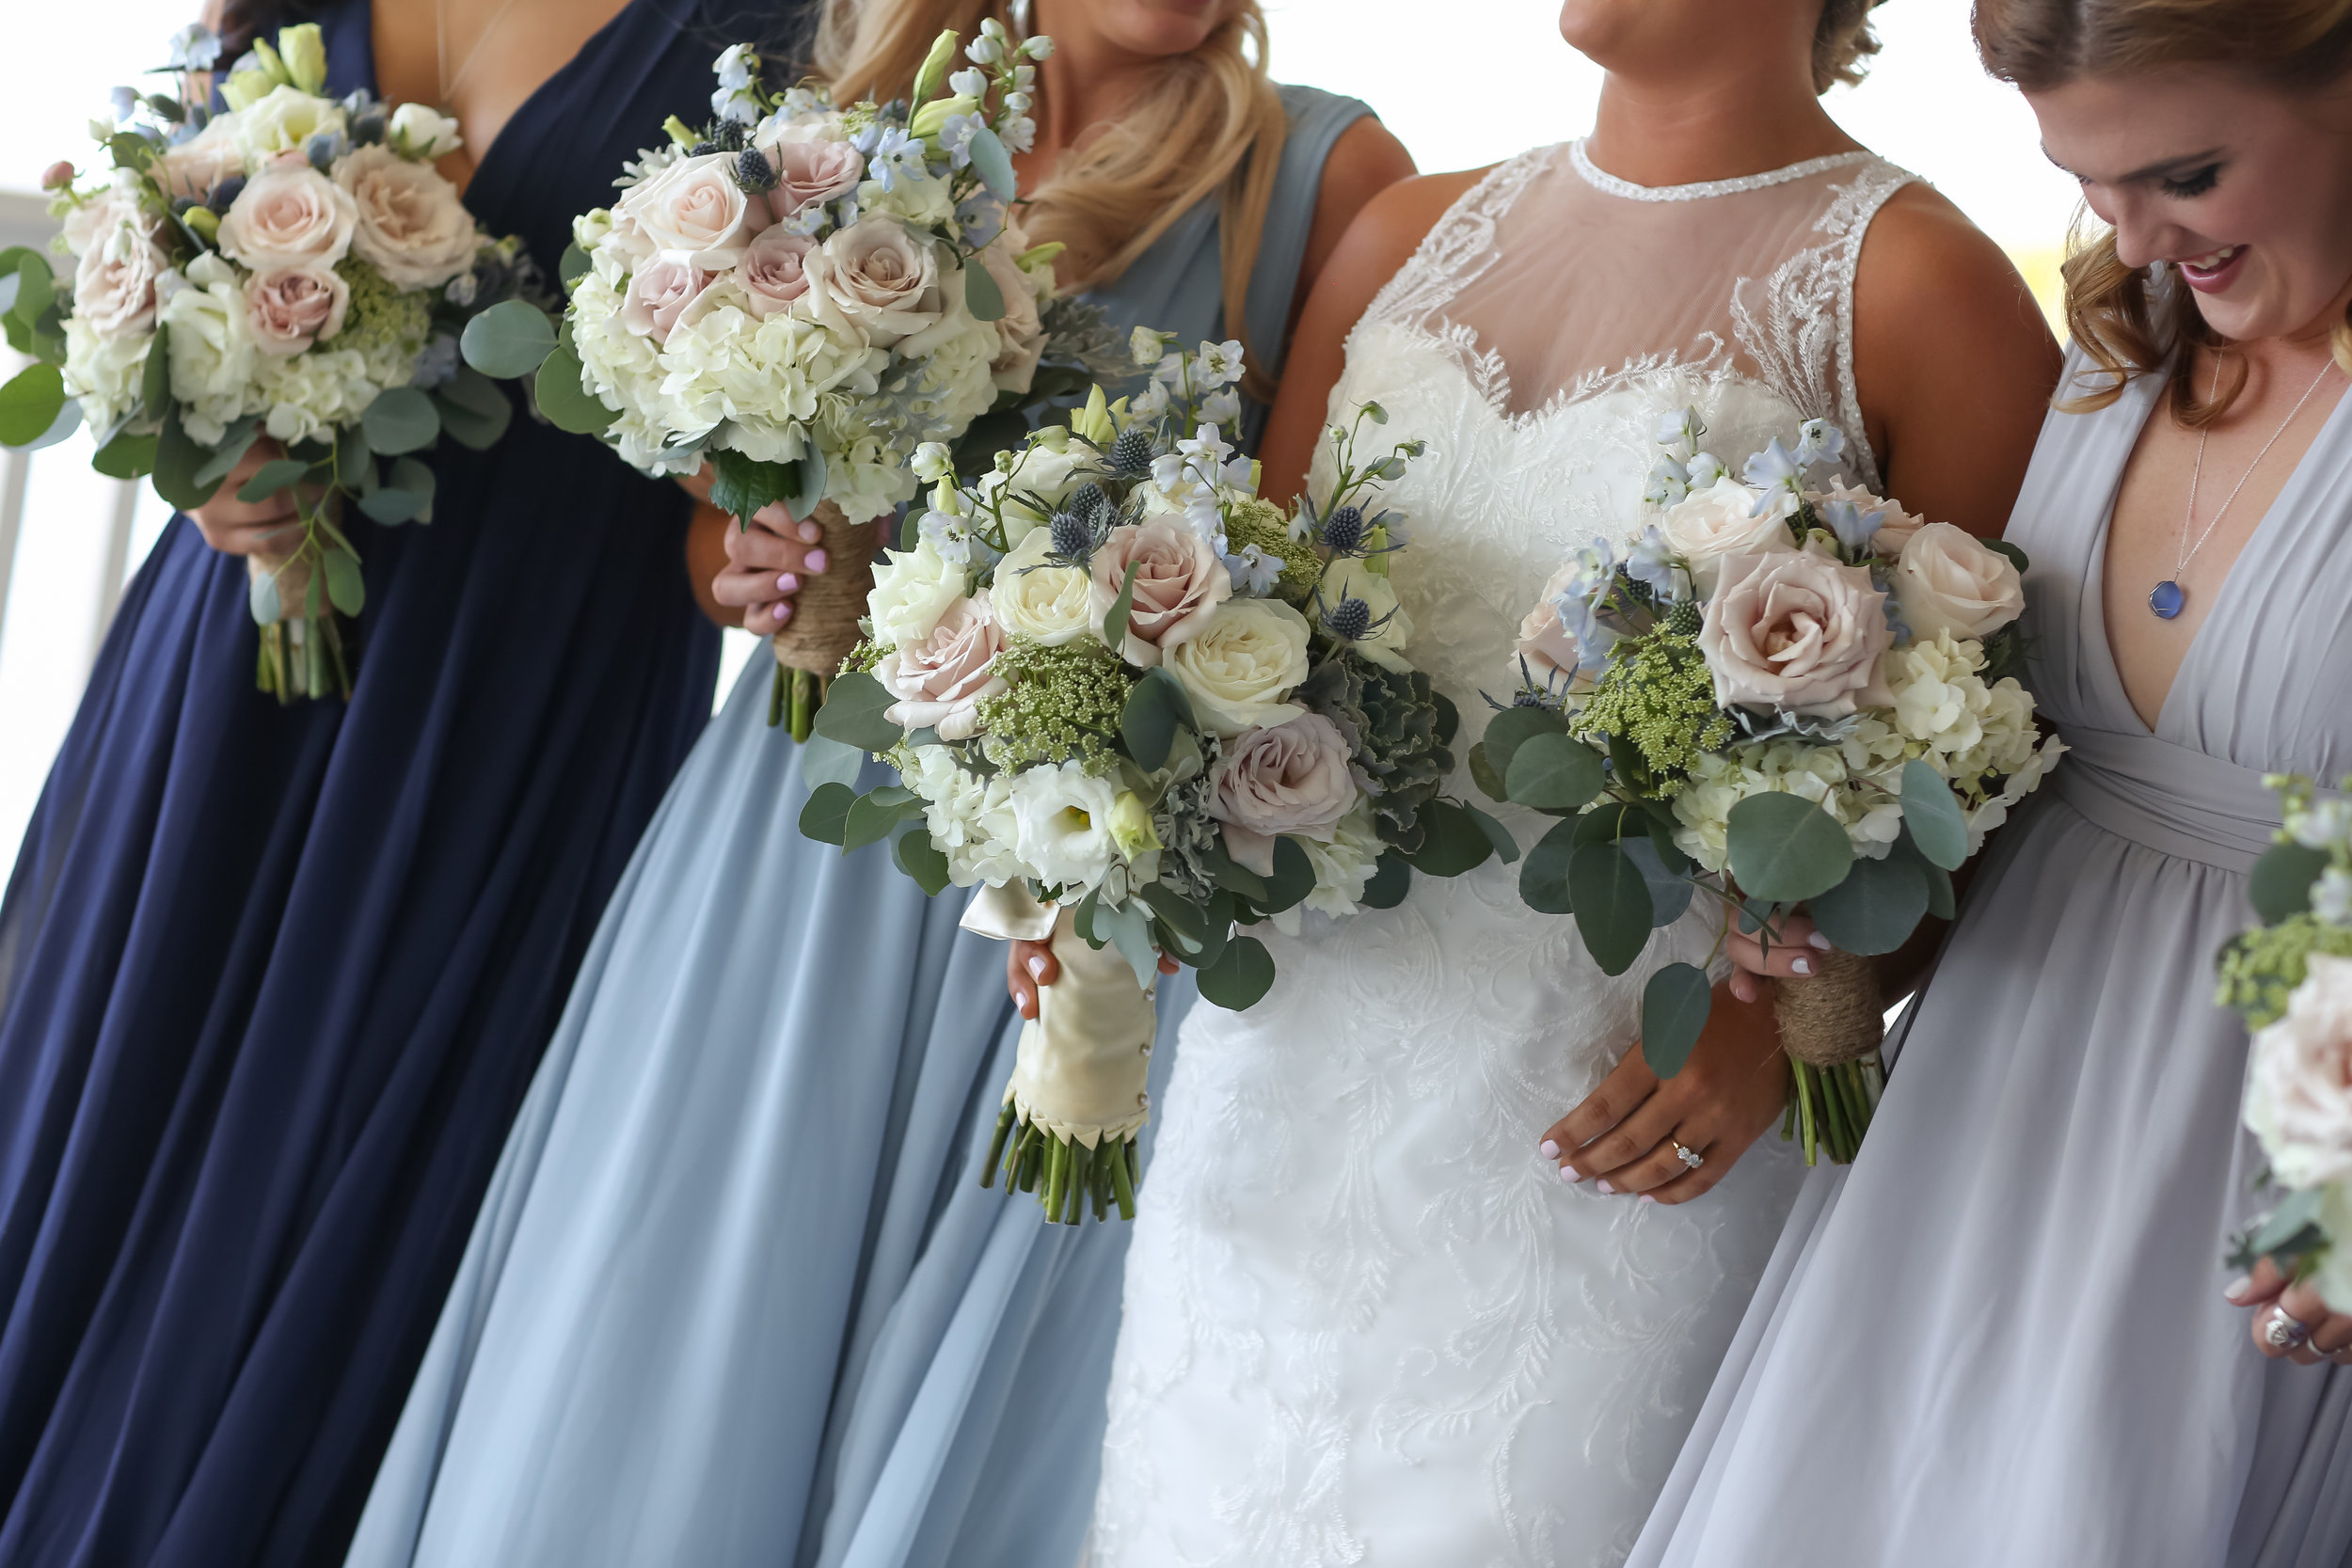 Bridesmaids wore chiffon dresses in varying shades of seaglass, to compliment their soft, organic bouquets.